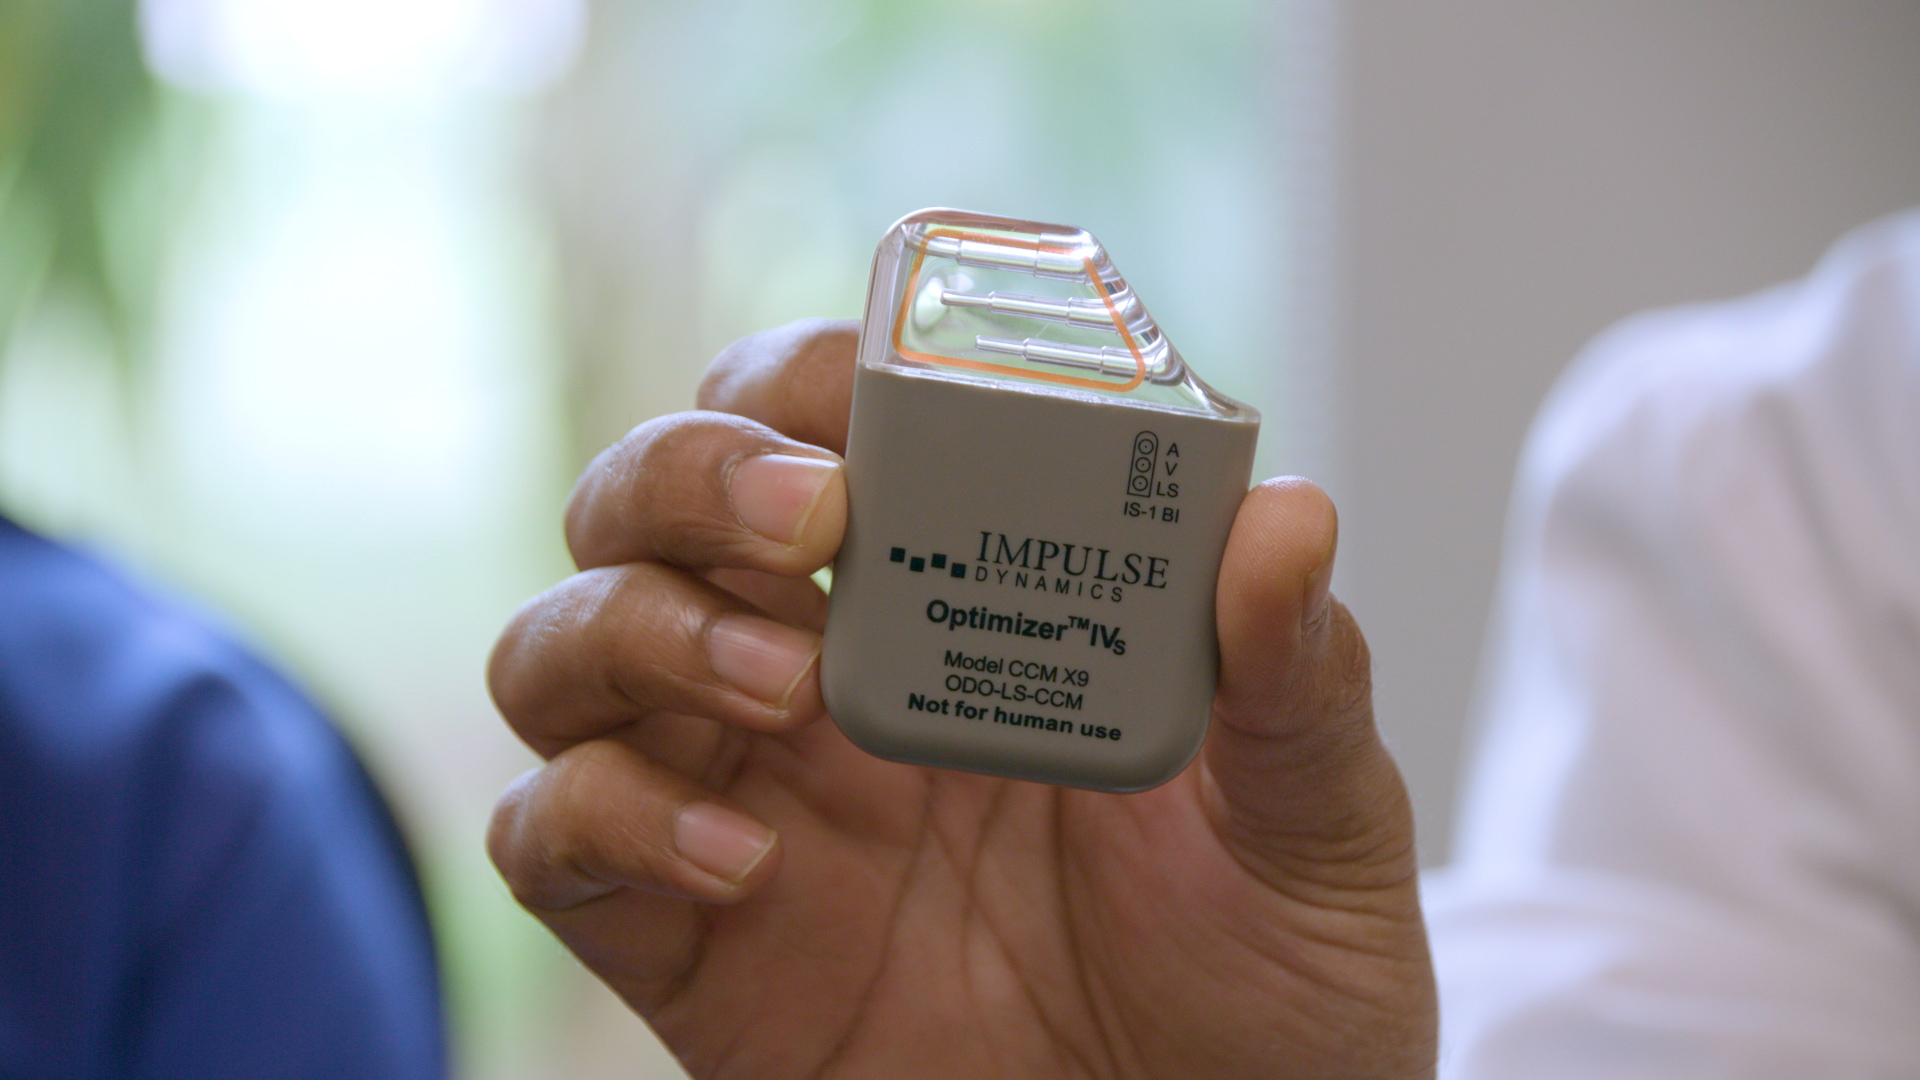 The Optimizer IVs Active Implantable Pulse Generator (IPG) by Impulse Dynamics.